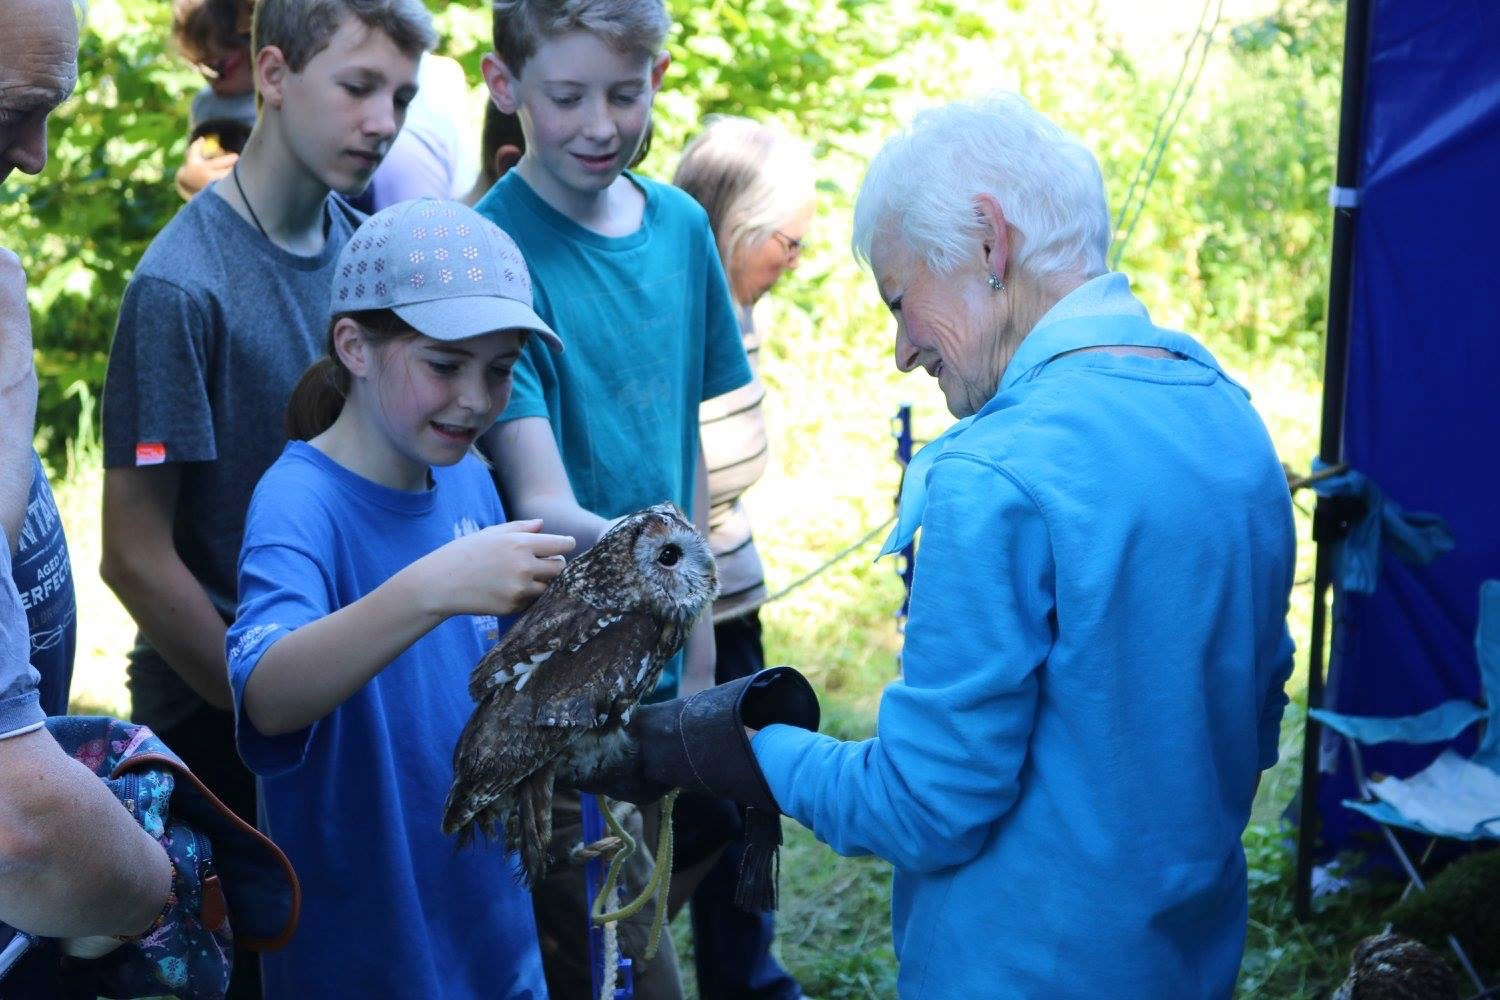 The public interact with Chelmarsh Owls